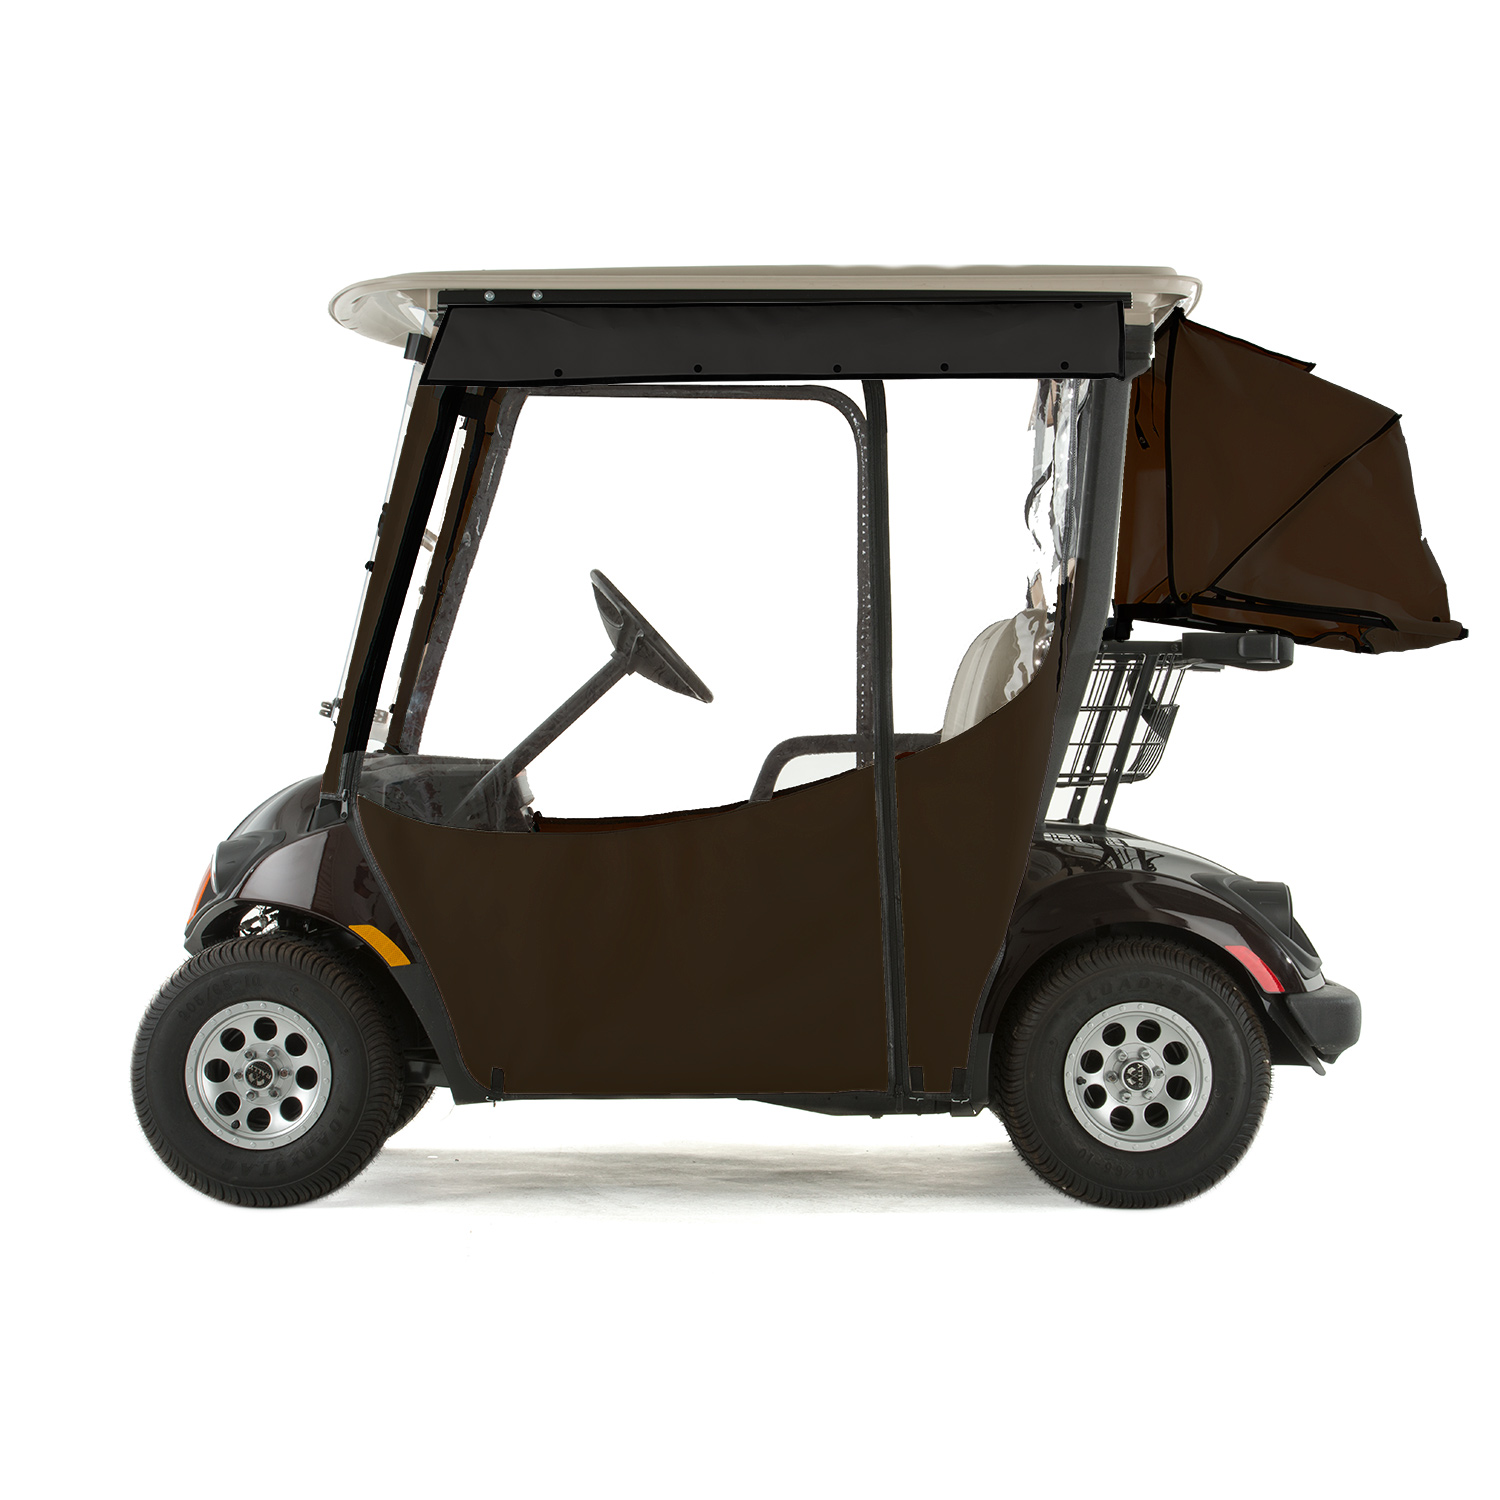 Yamaha Drive 2 Golf Cart PRO-TOURING Sunbrella Track Enclosure - True Brown